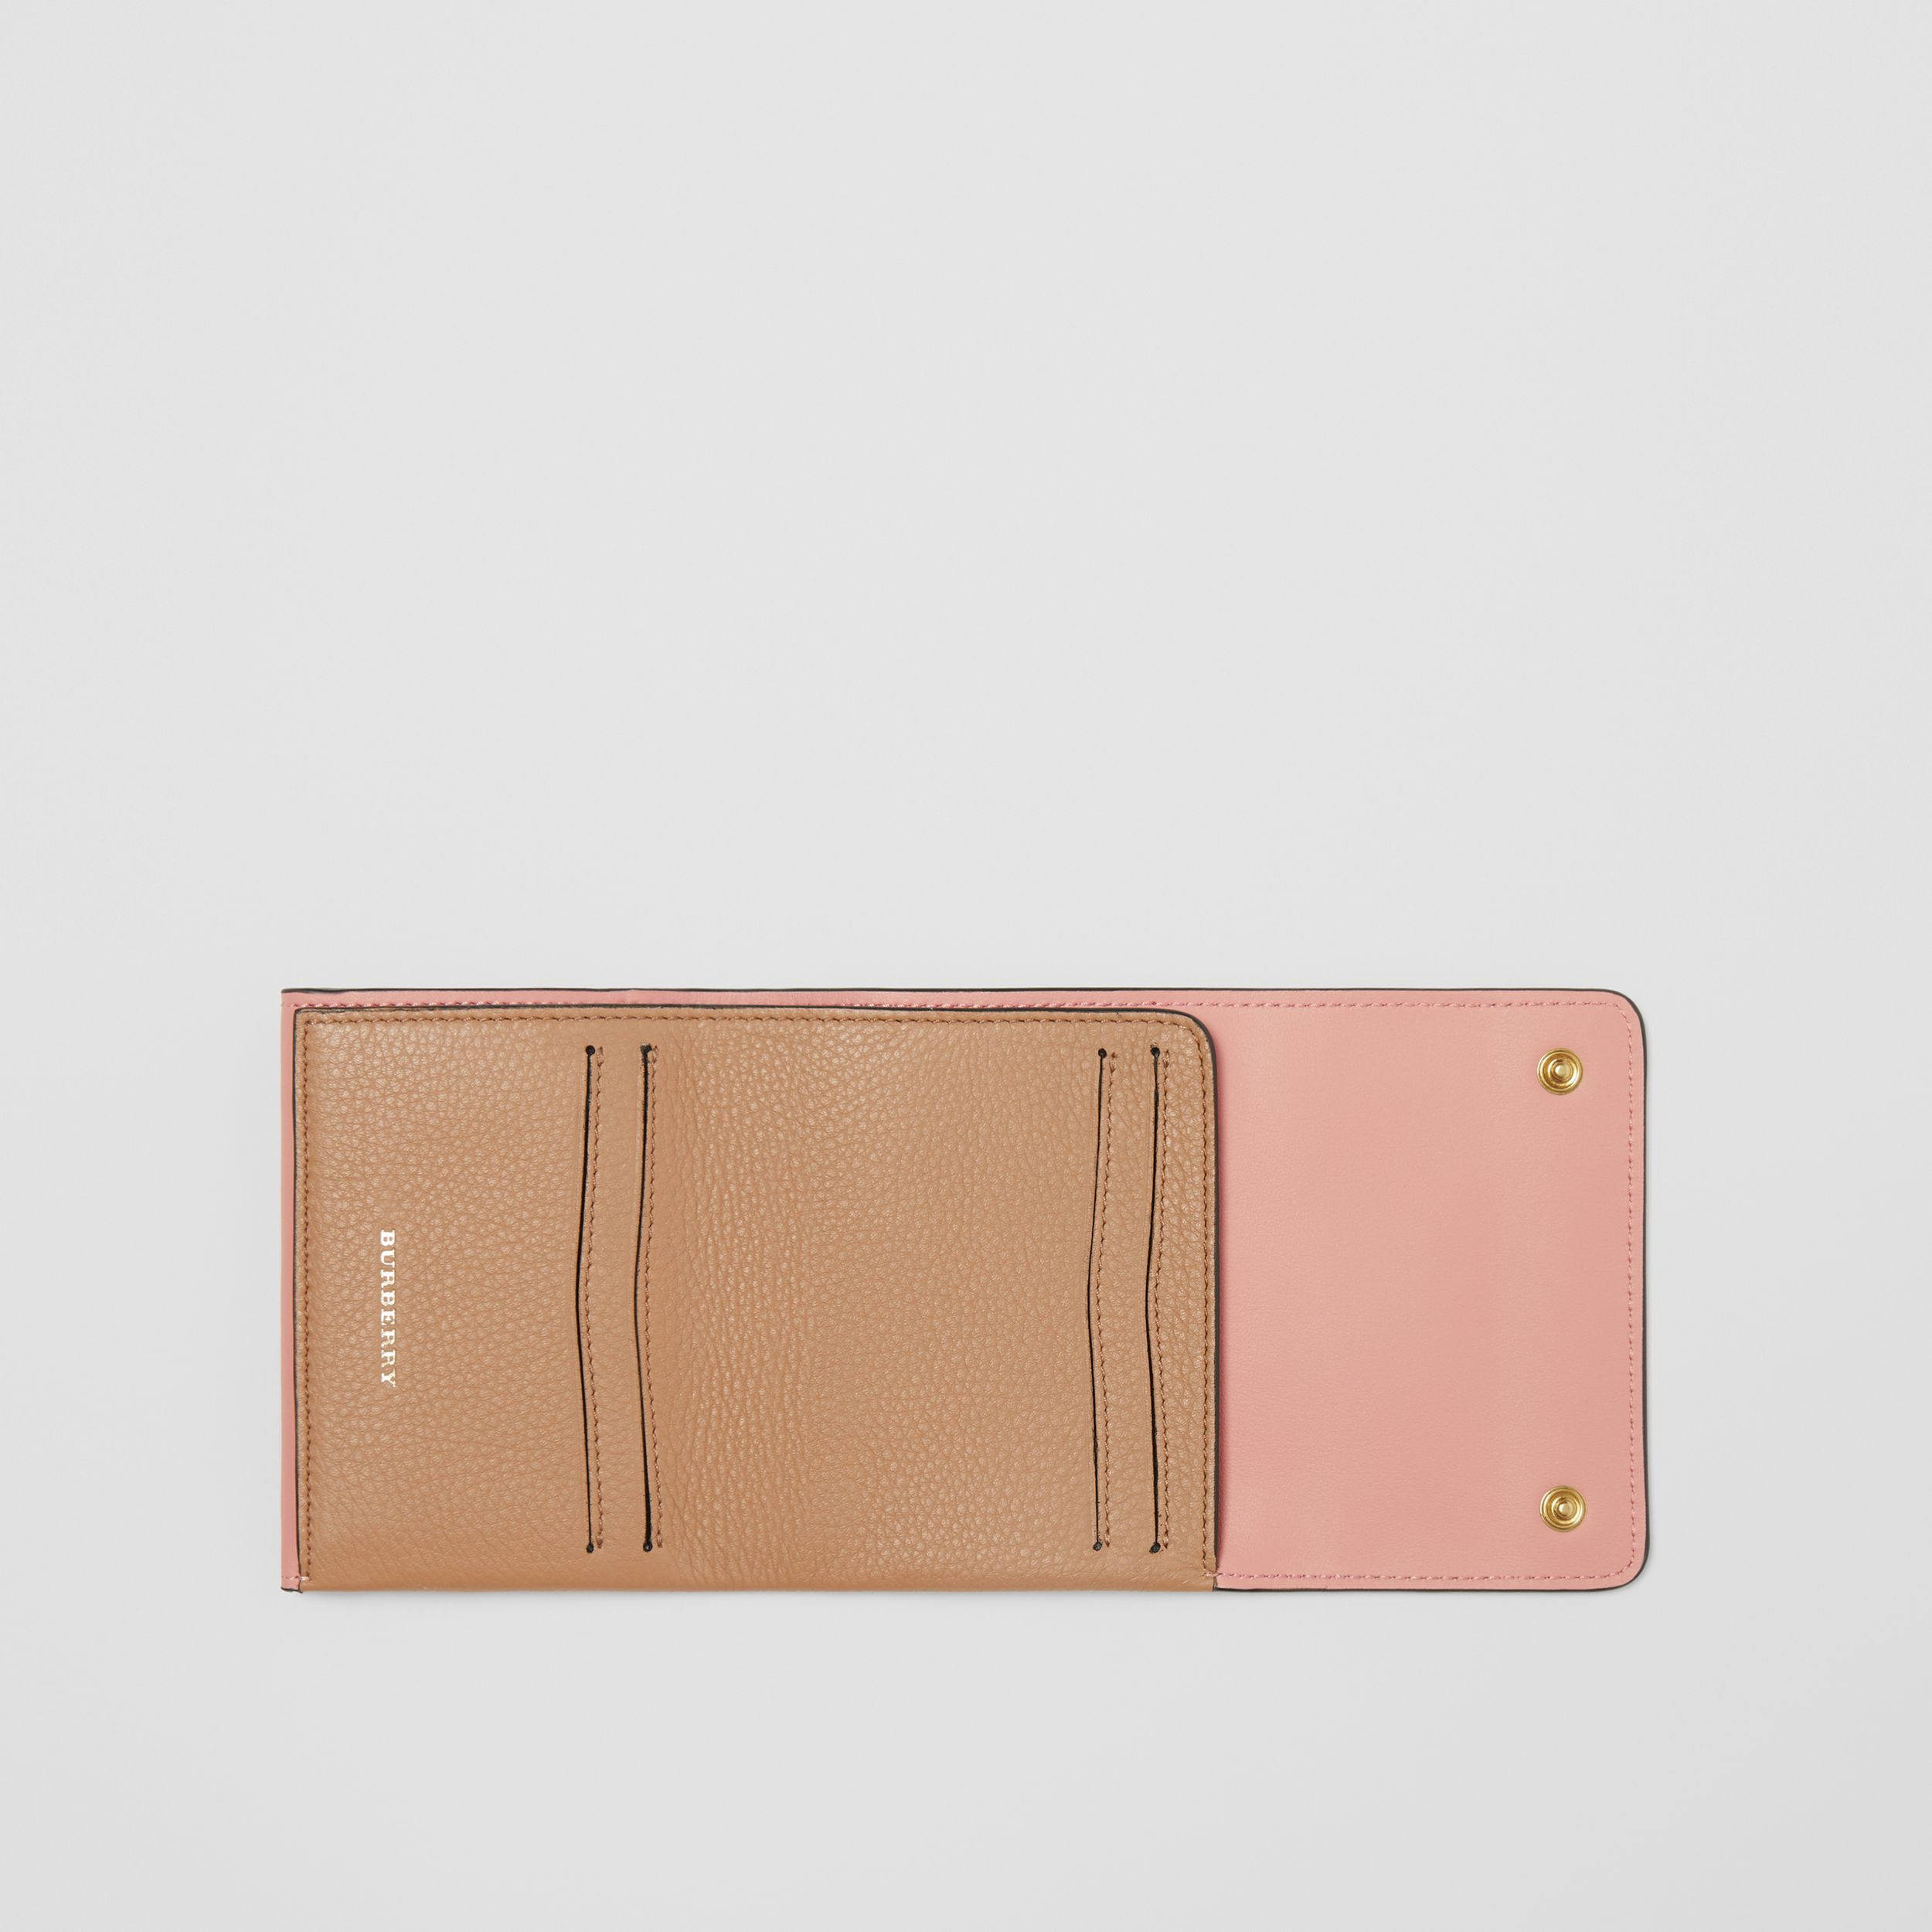 Small Leather Folding Wallet in Light Camel - Women | Burberry United Kingdom - 4